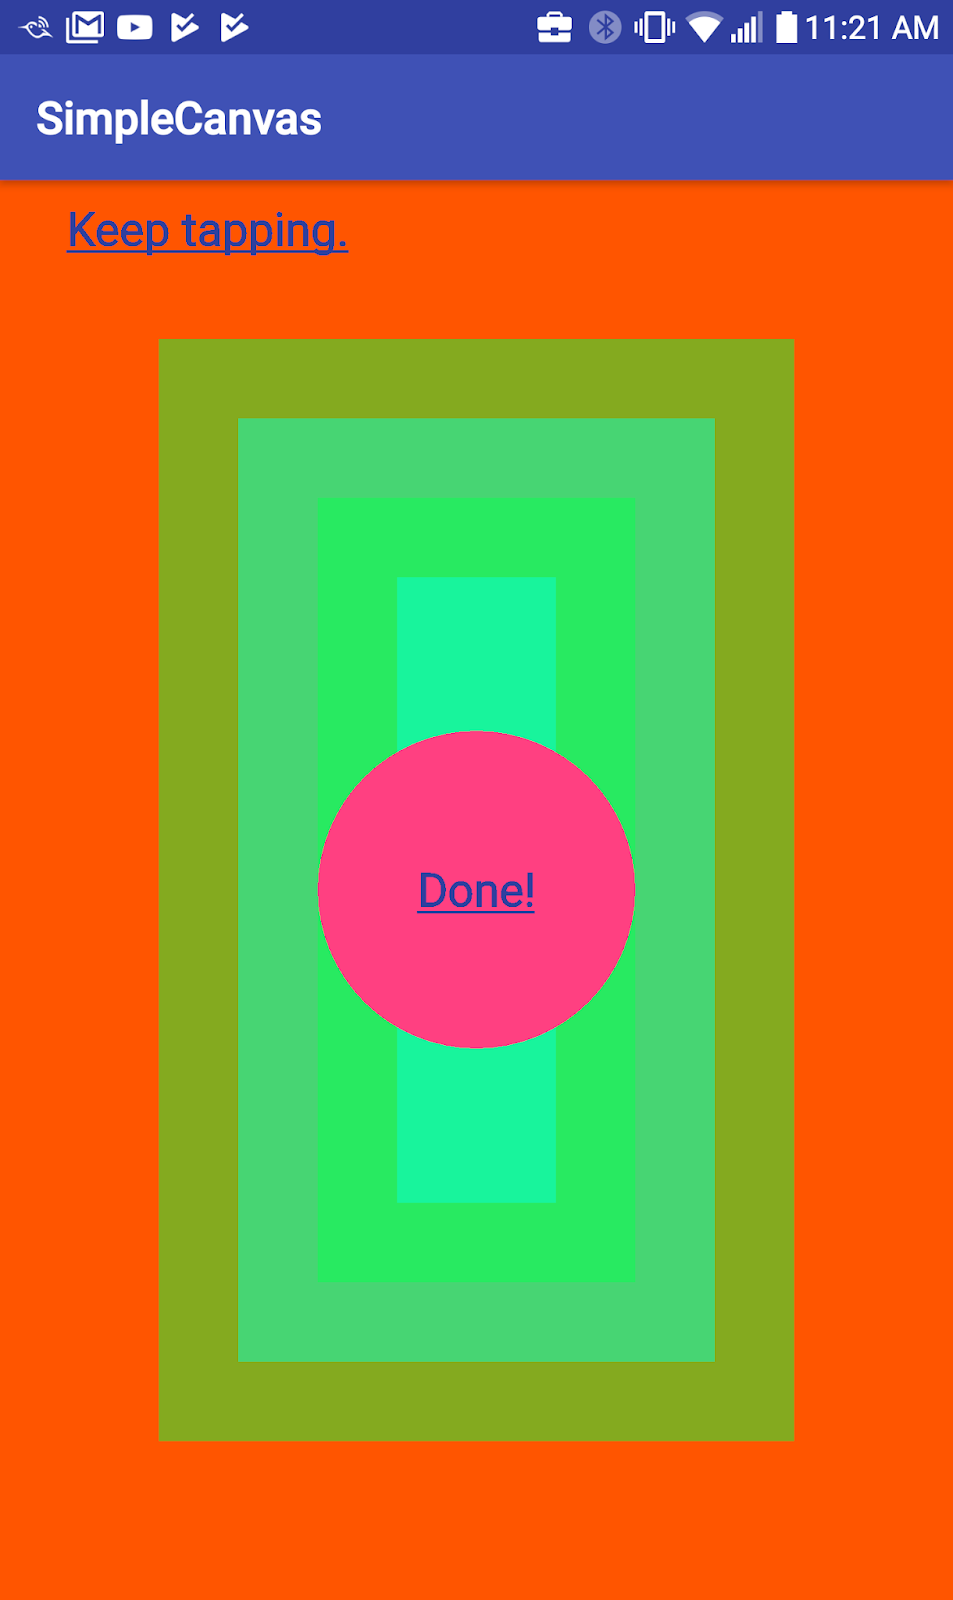 Screenshot for the final drawing of the SimpleCanvas app